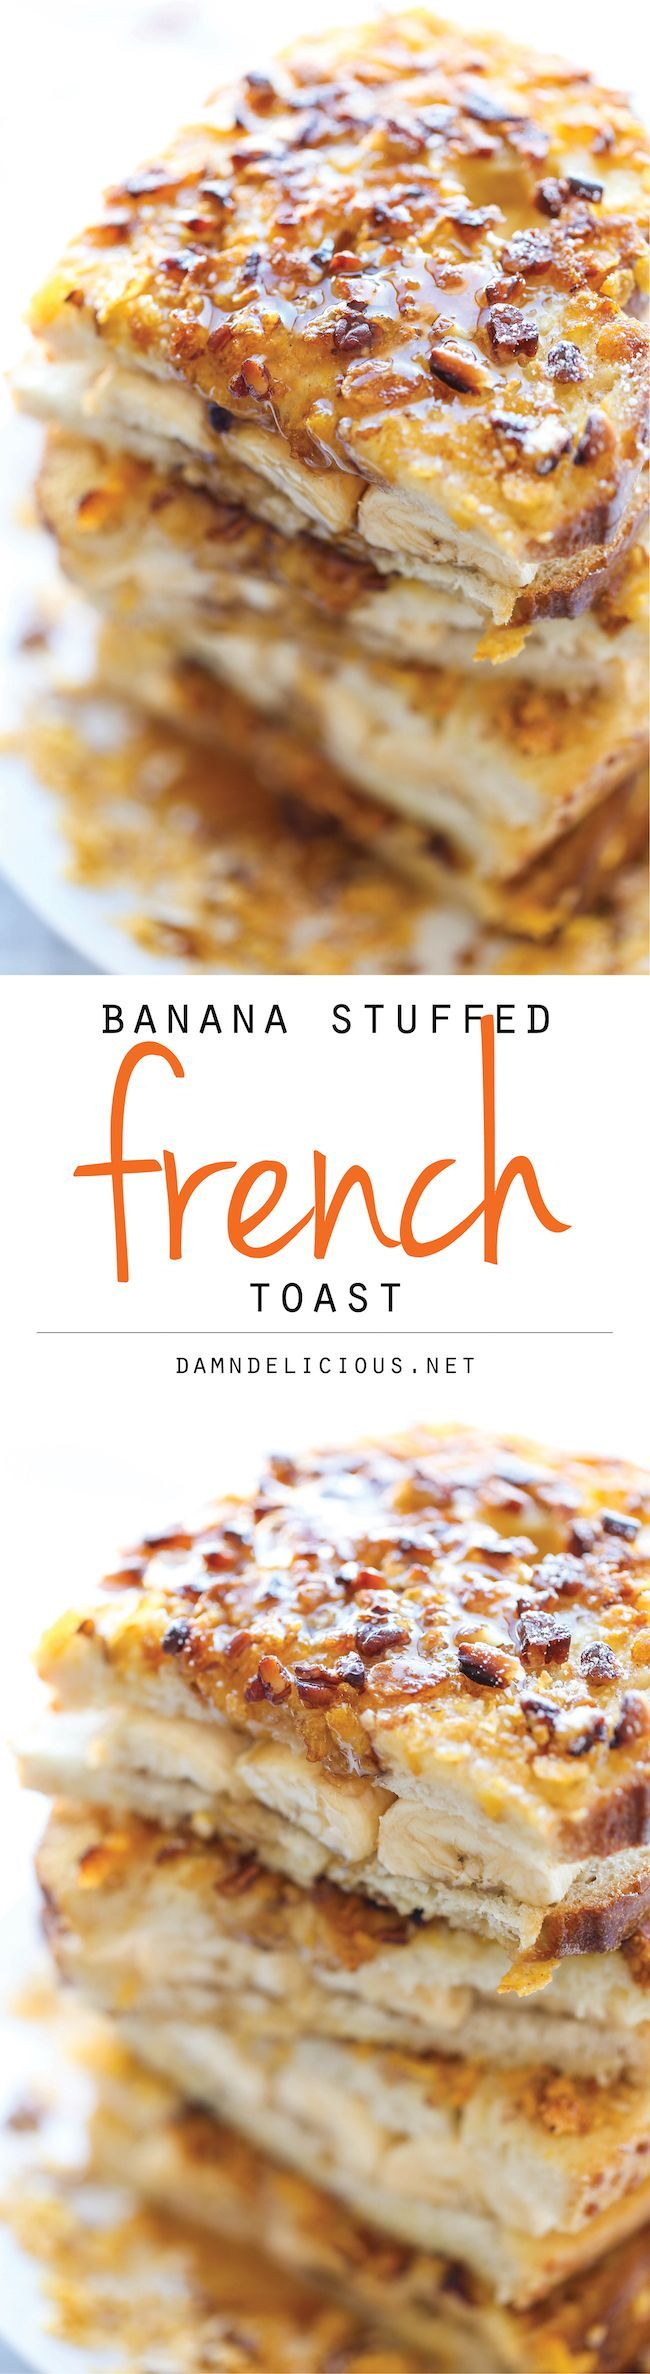 Banana Stuffed French Toast ~ After this, you'll never want traditional French toast ever again. And this is the perfect way to use up those spotty bananas!